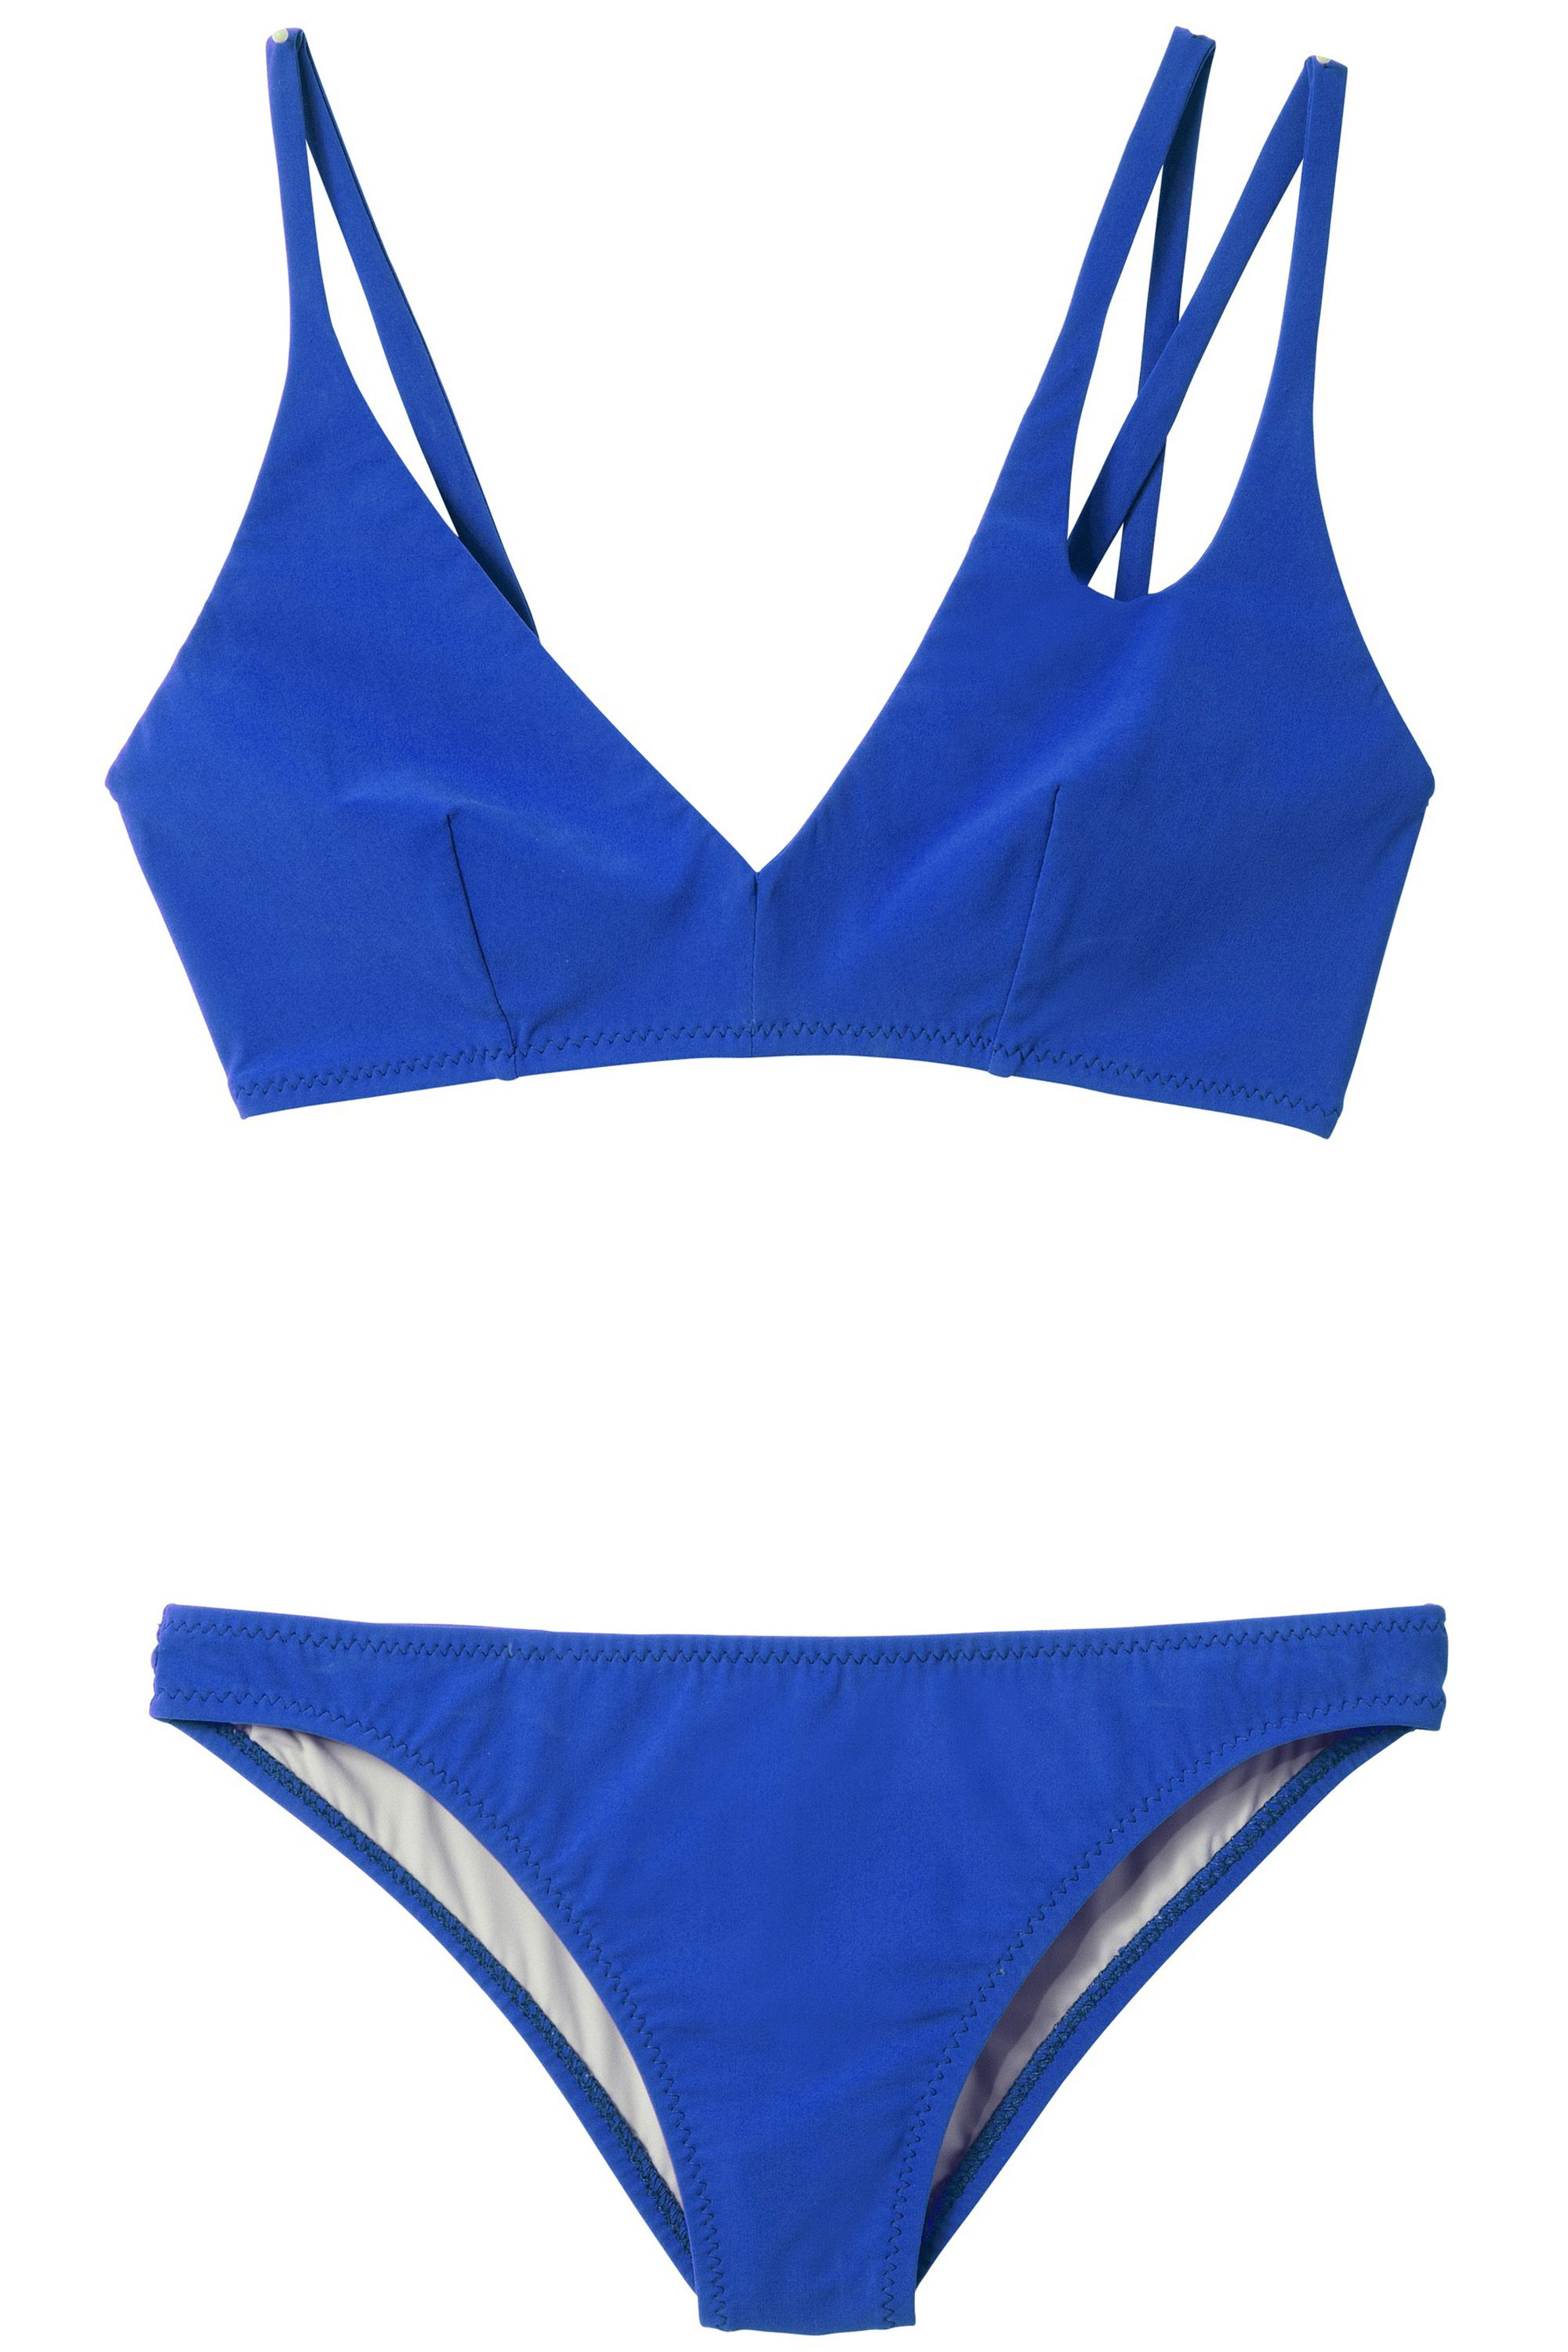 "<strong>Araks</strong> bikini top, $200, and bottoms, $105, <a target=""_blank"" href=""http://shop.harpersbazaar.com/designers/araks/elias-bikini/"">shopBAZAAR.com</a><img src=""http://assets.hdmtools.com/images/HBZ/Shop.svg"" class=""icon shop"">."